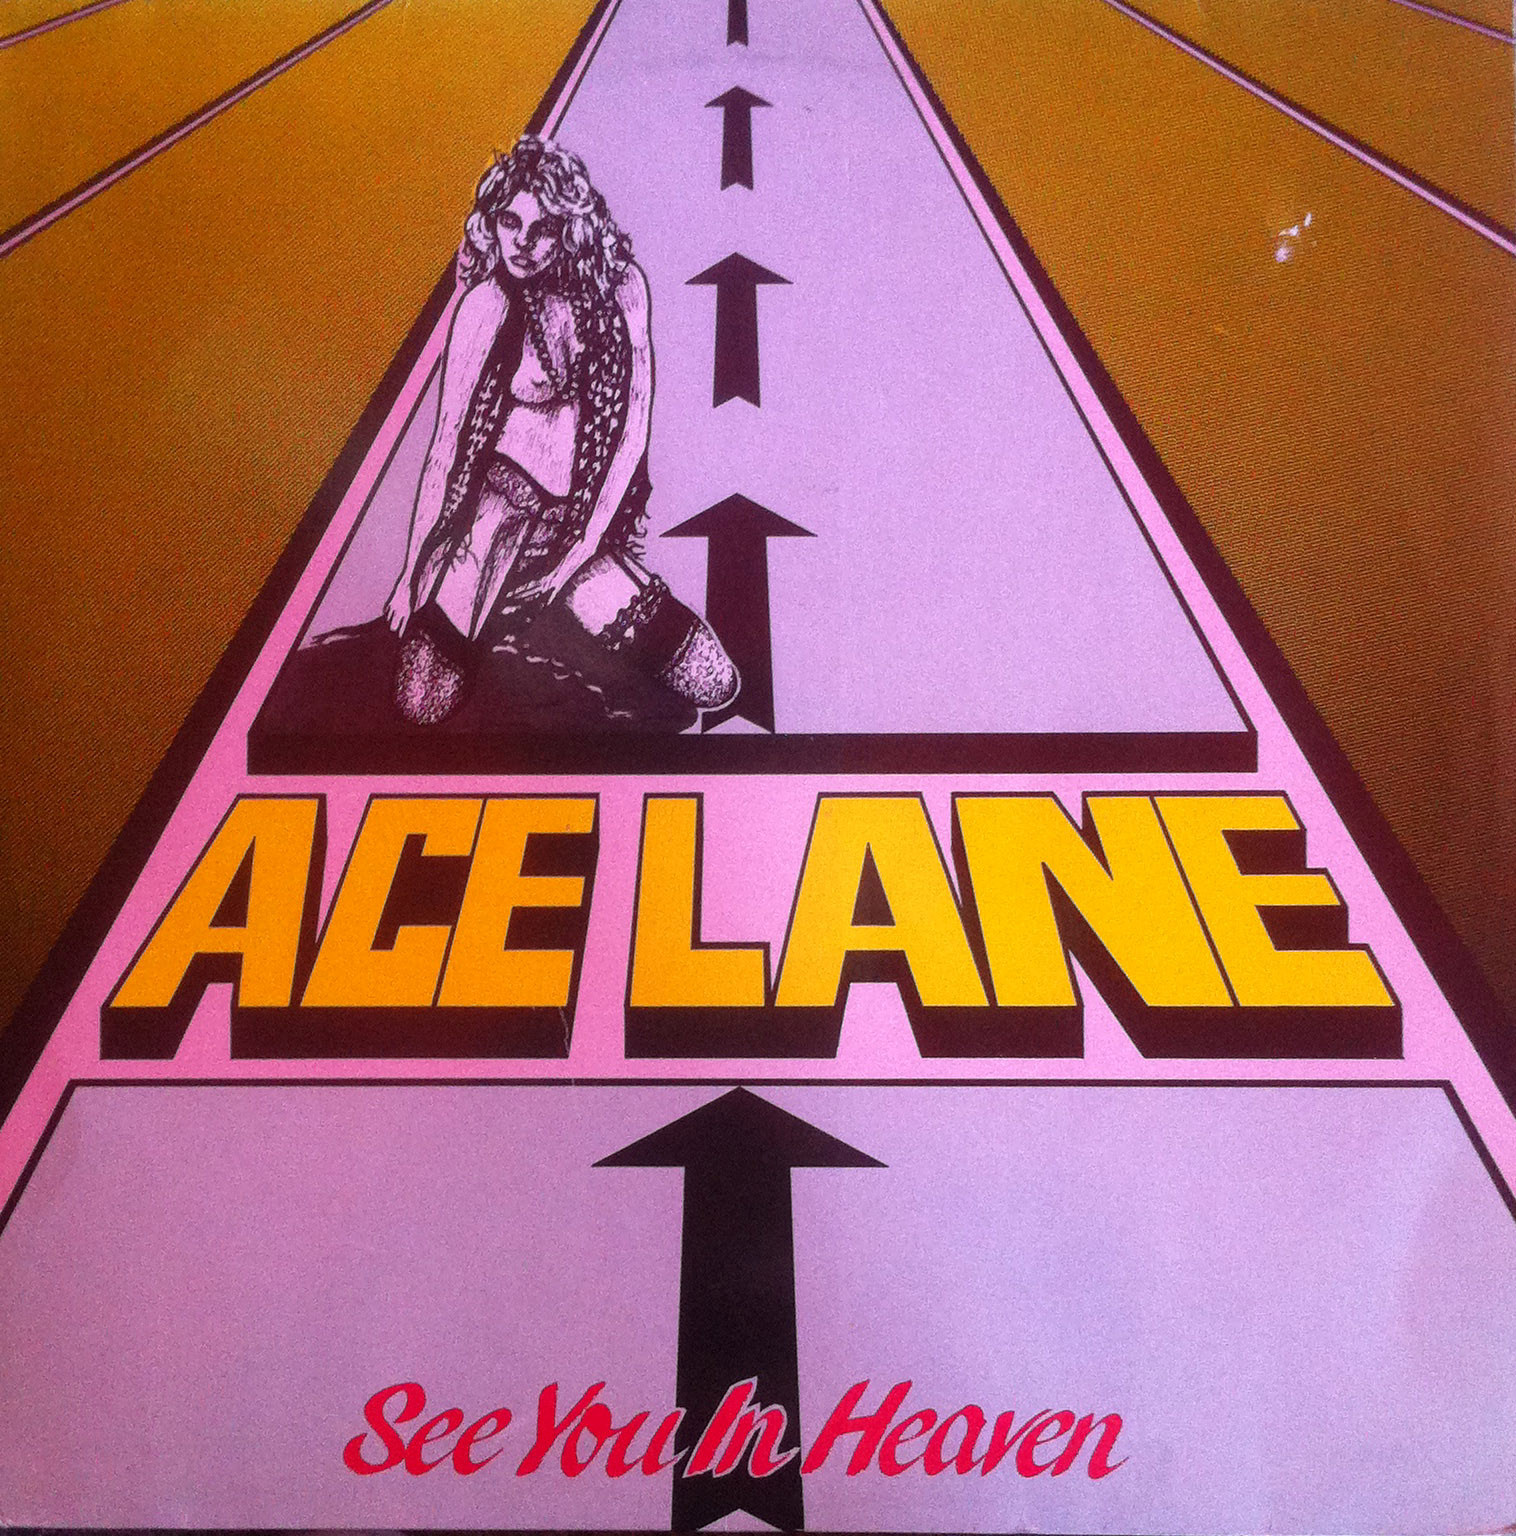 ACE LANE - See You In Heaven - 1